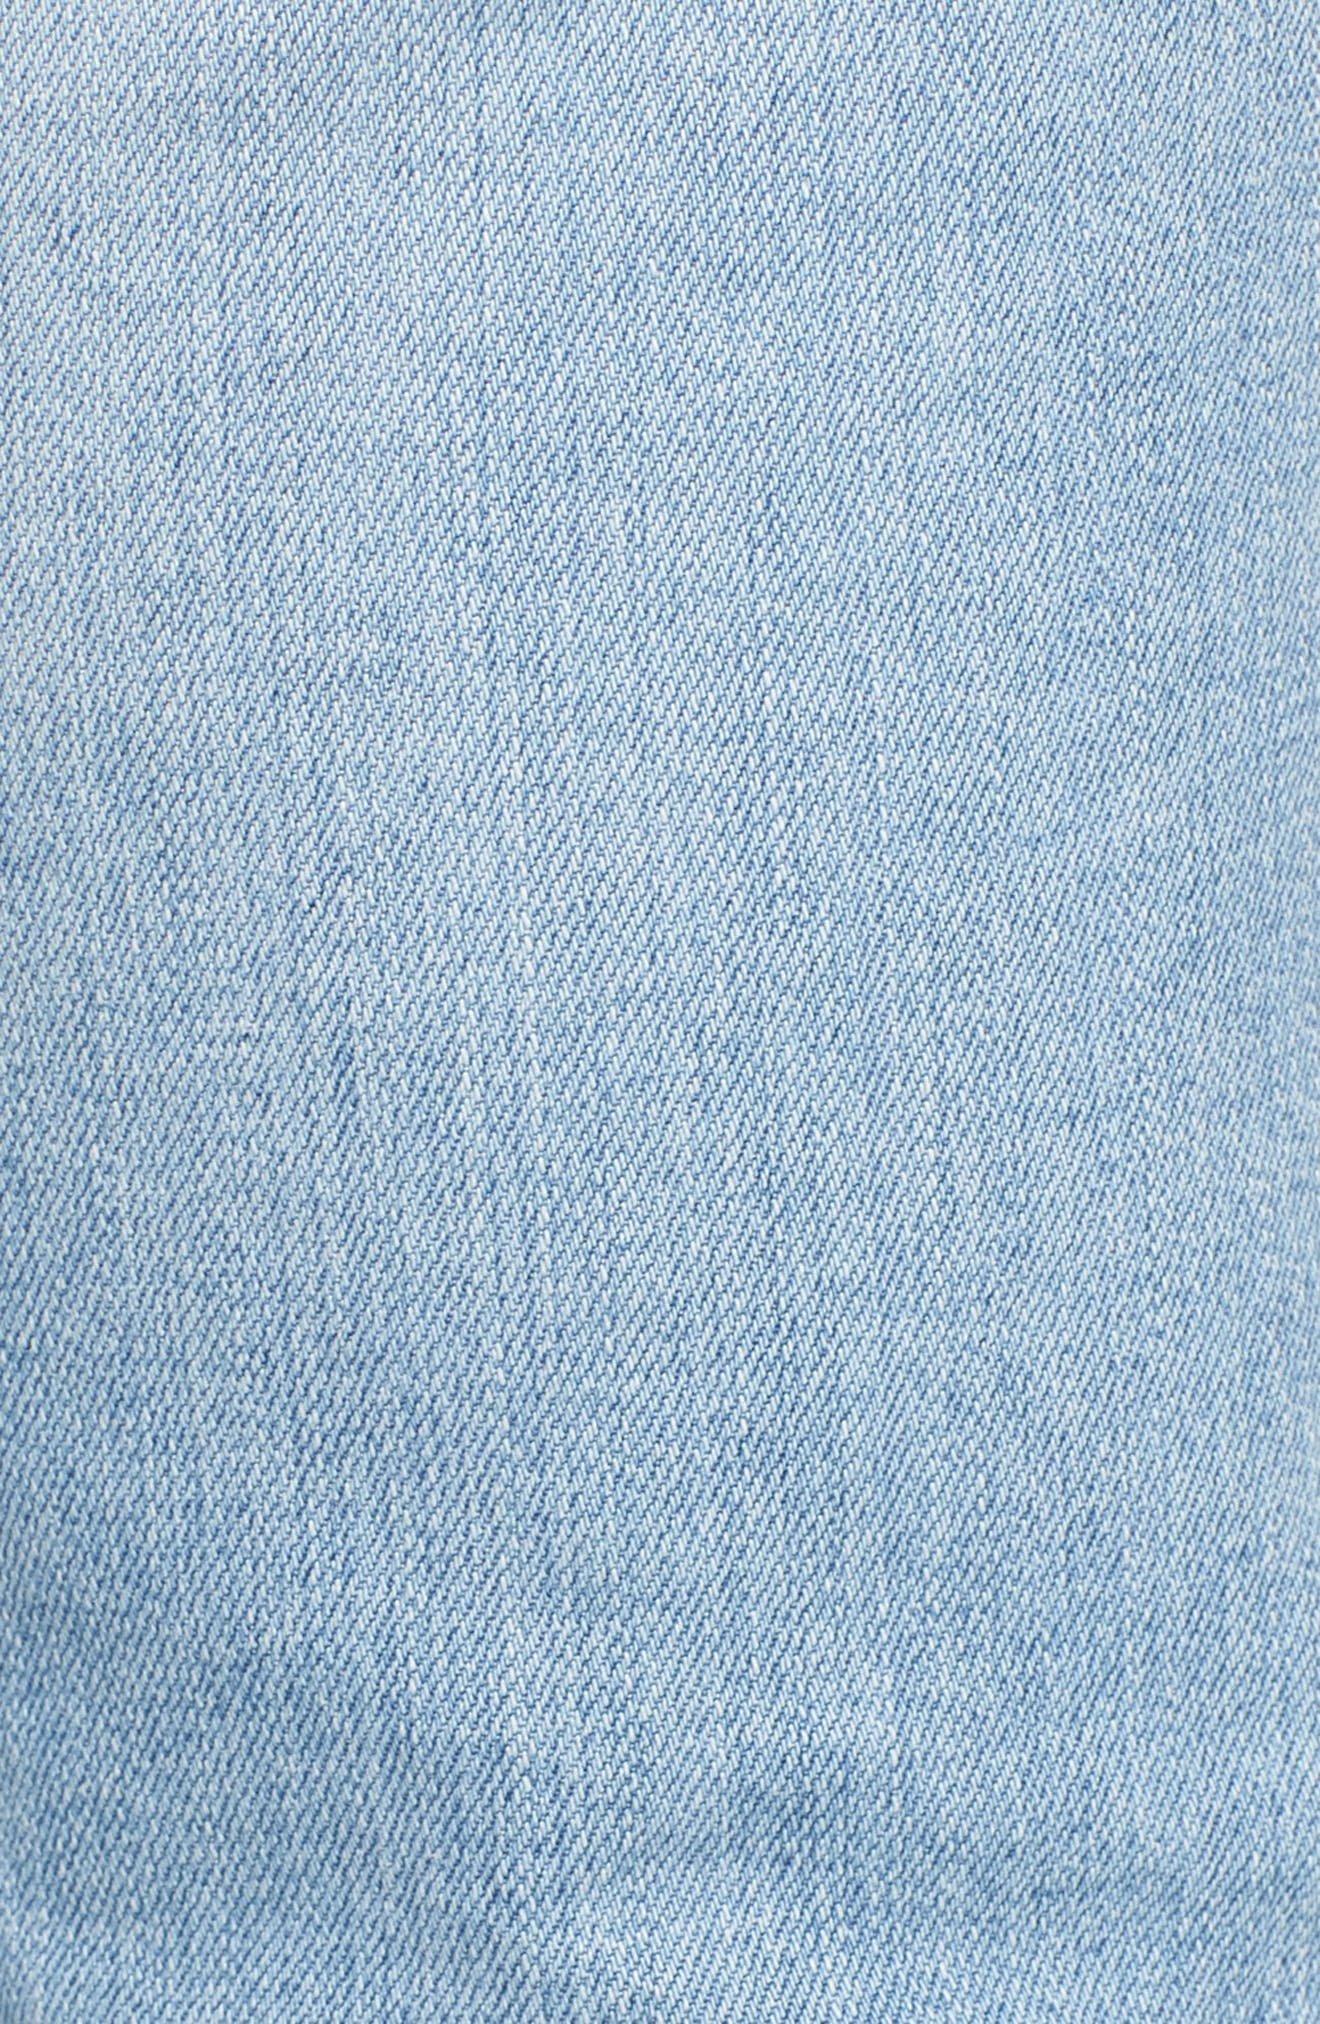 Stockton Skinny Fit Jeans,                             Alternate thumbnail 5, color,                             21 Years Solstice